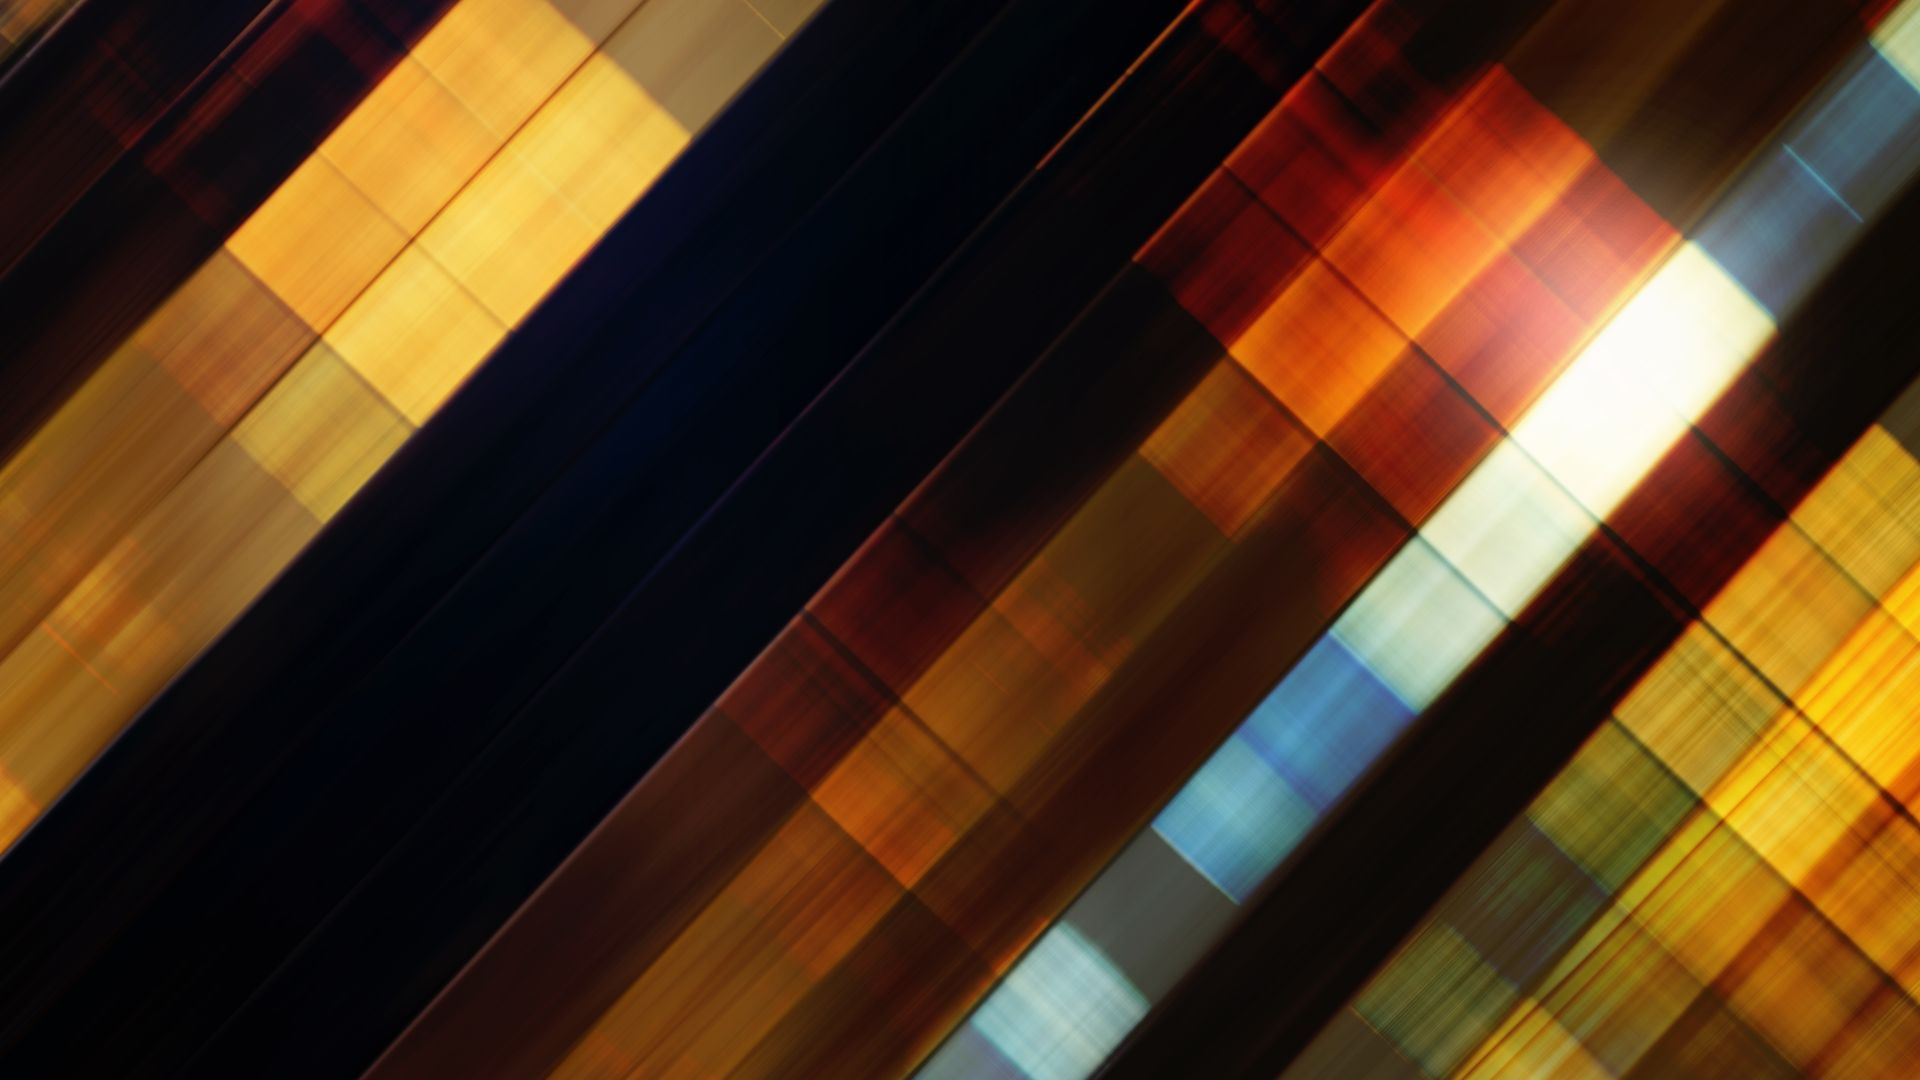 Abstract Texture Digital Art, lights, 4K (horizontal)